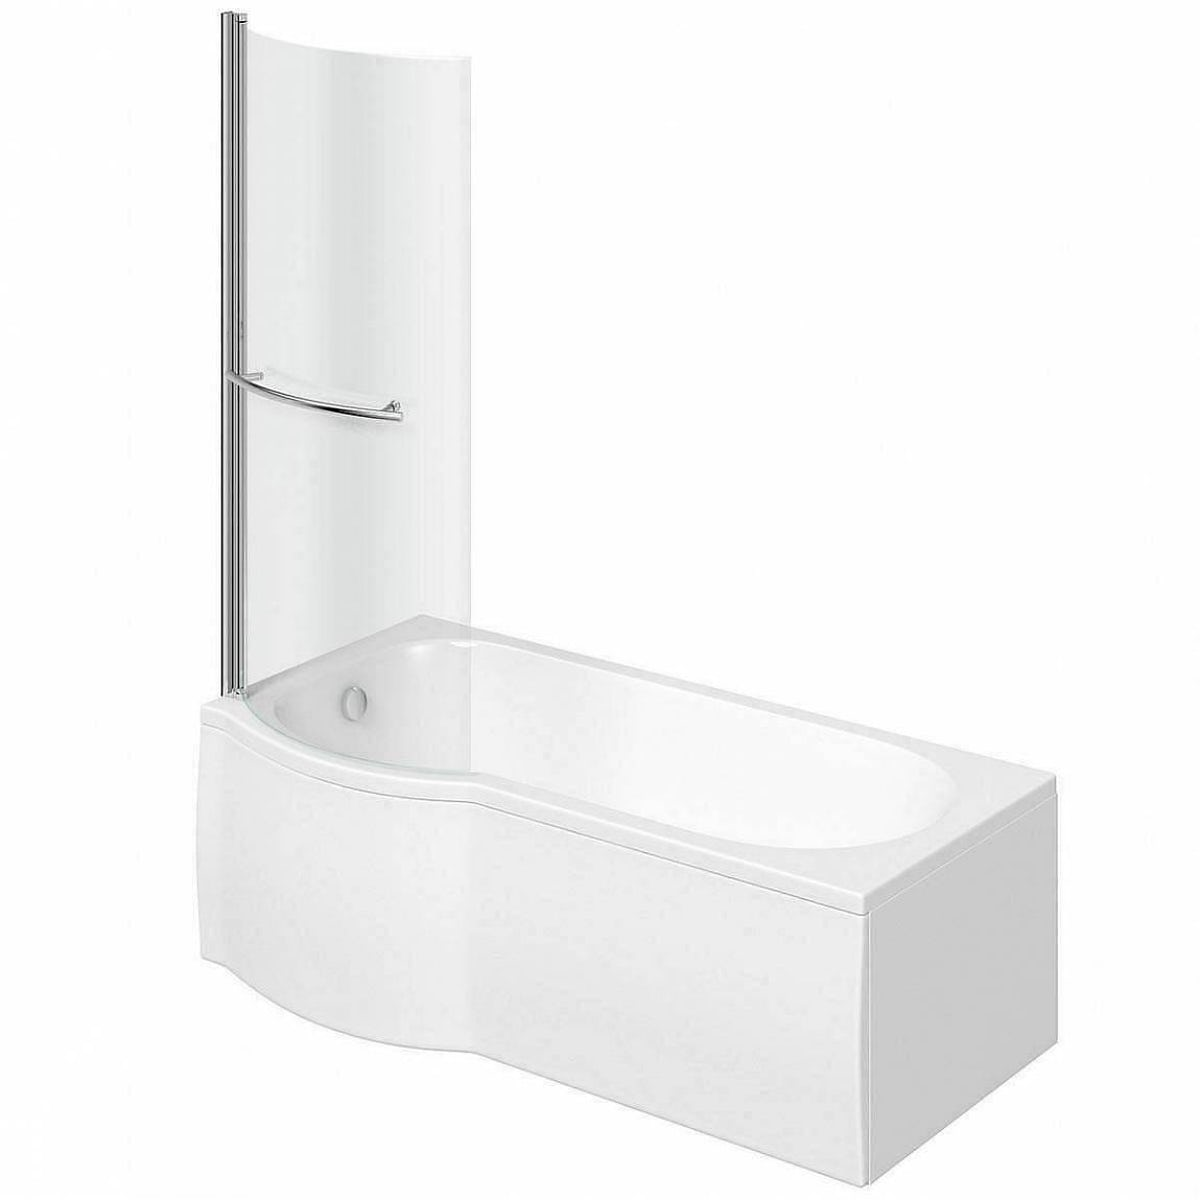 Orchard P Shaped Left Handed Shower Bath 1675mm With 6mm Shower Screen And Rail Victoriaplum Com